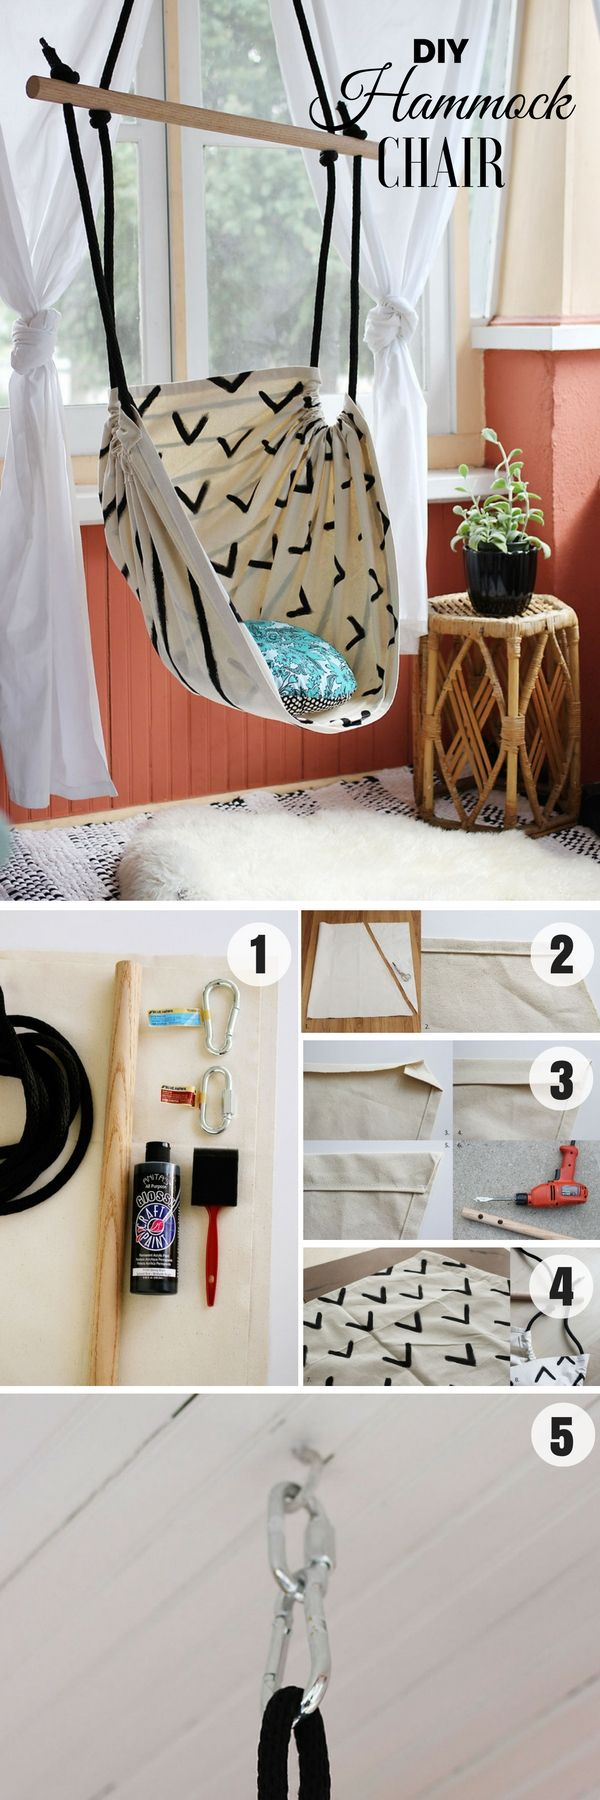 Diy Bedroom Decor Ideas Best 25 Diy Room Ideas Ideas On Pinterest  Crafts With Mason .